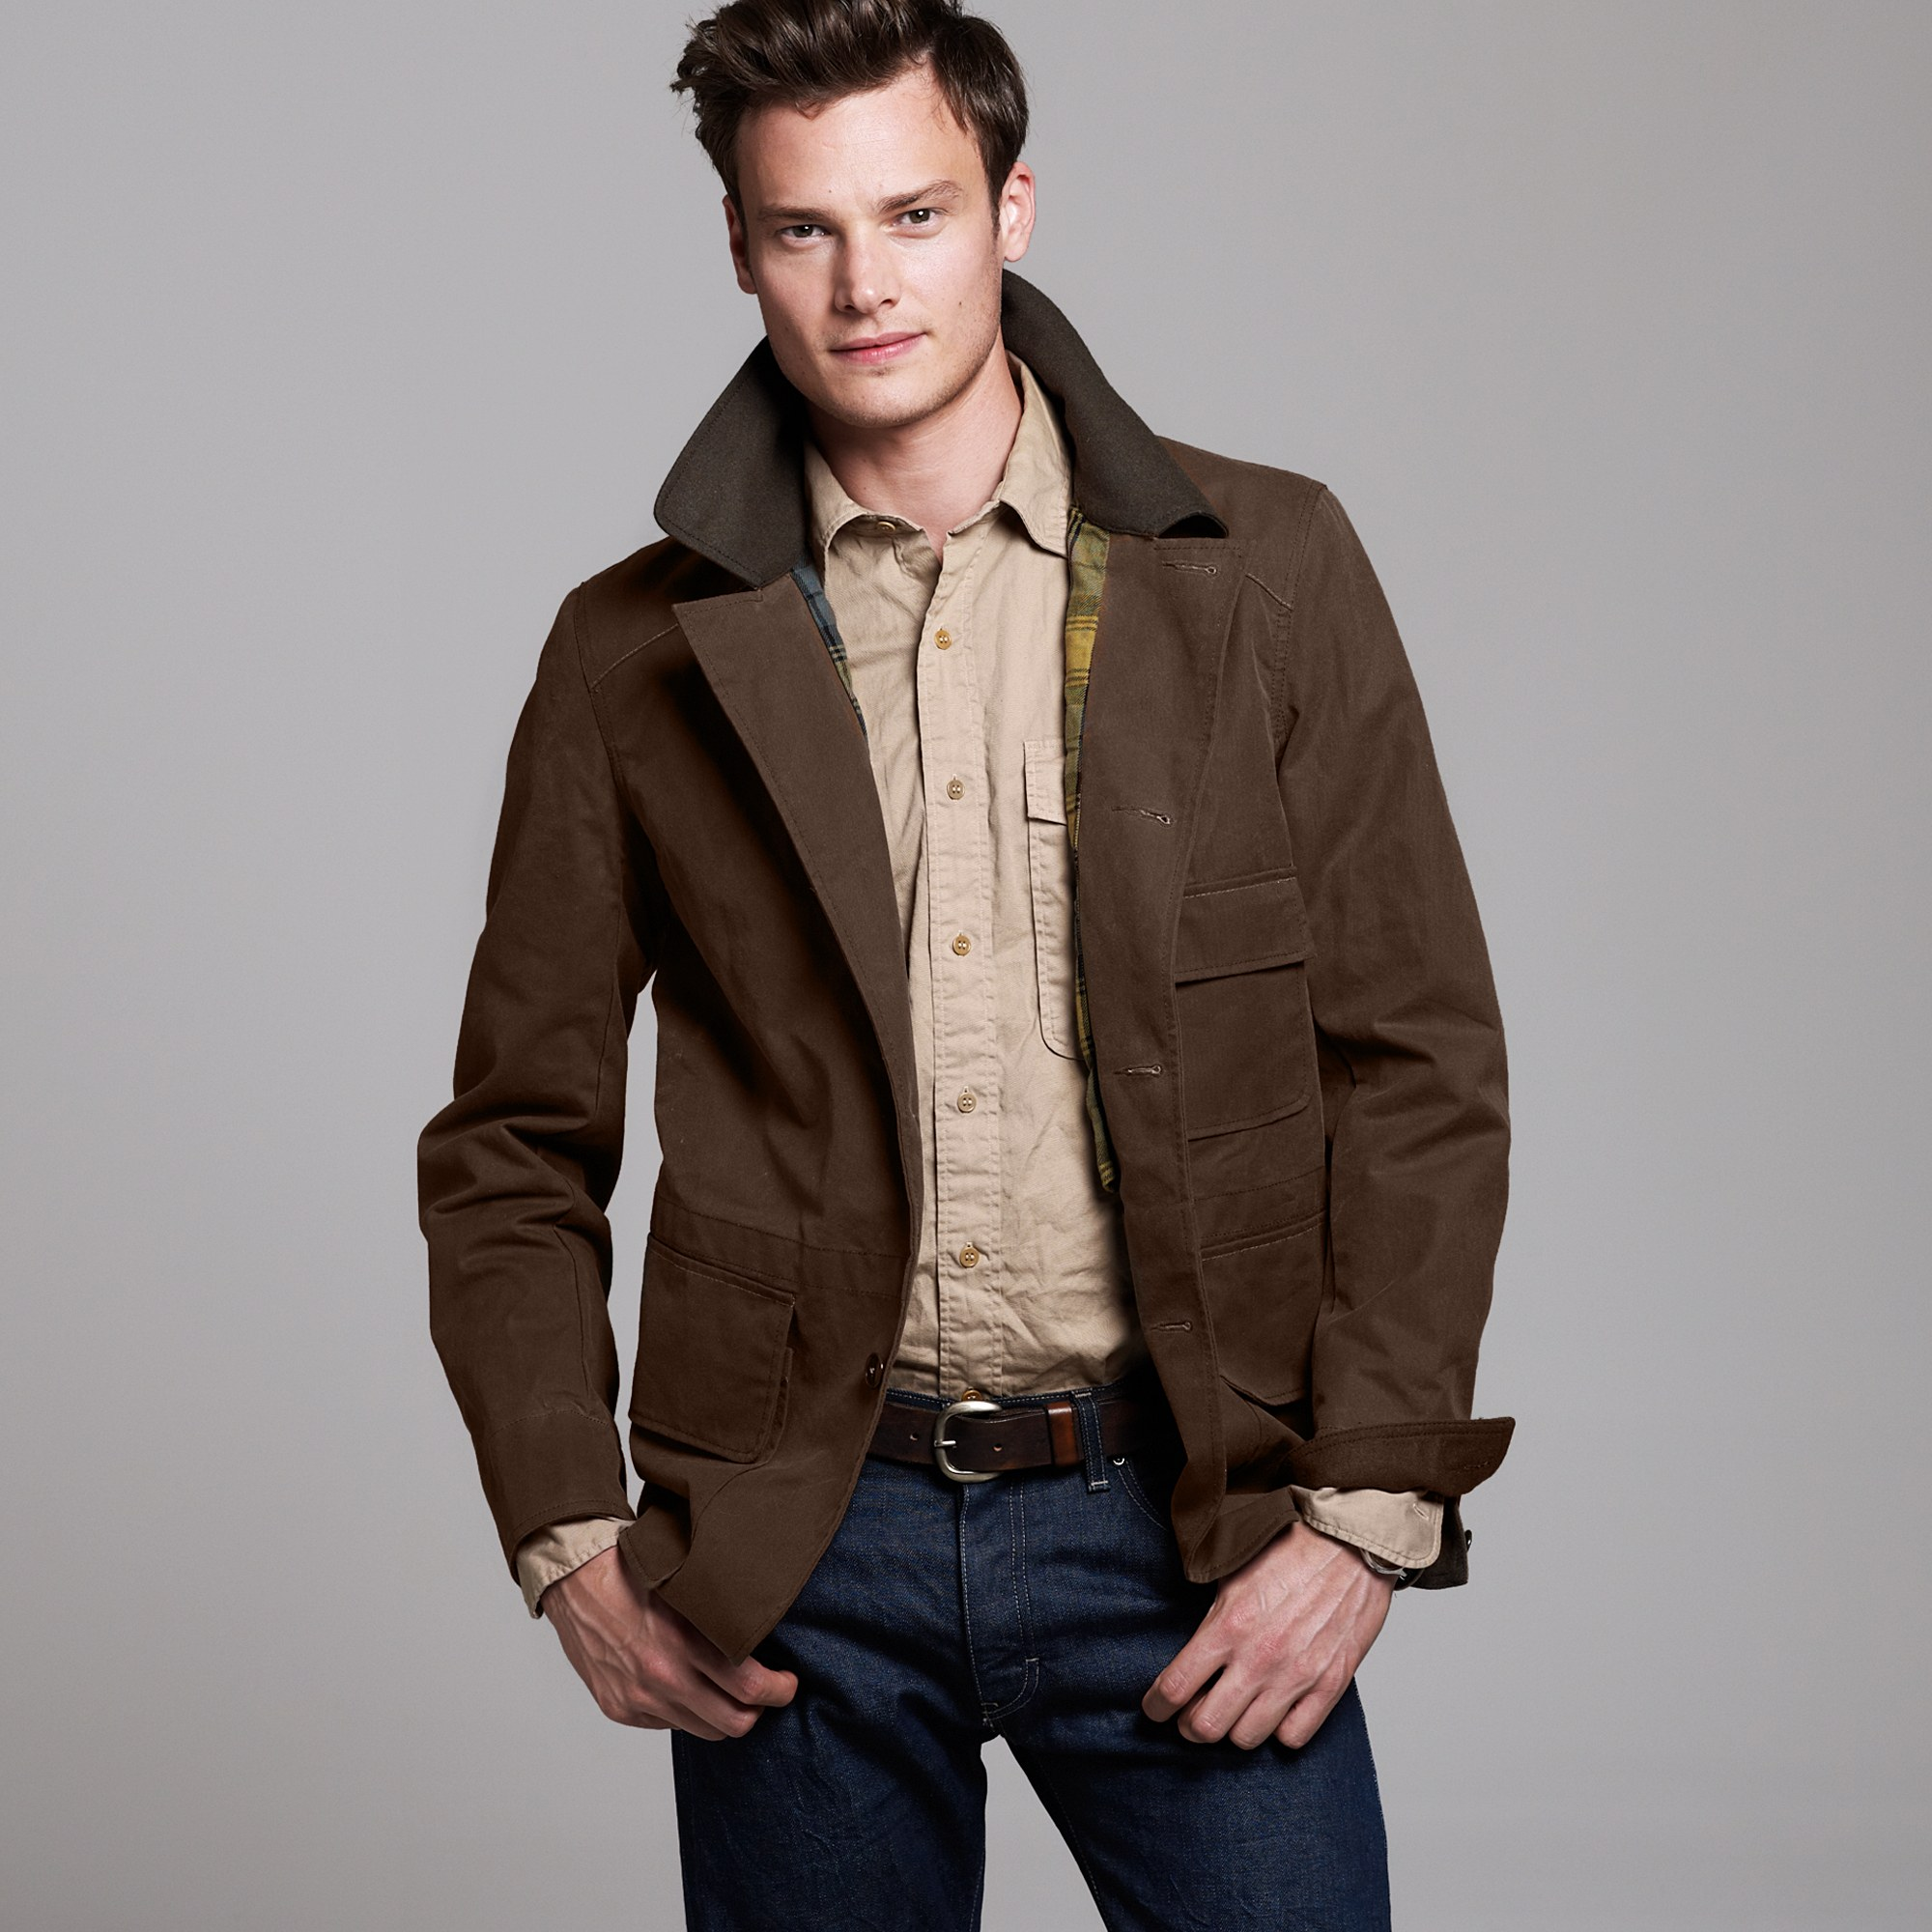 J.Crew Wallace & Barnes Brush Jacket in Brown for Men - Lyst